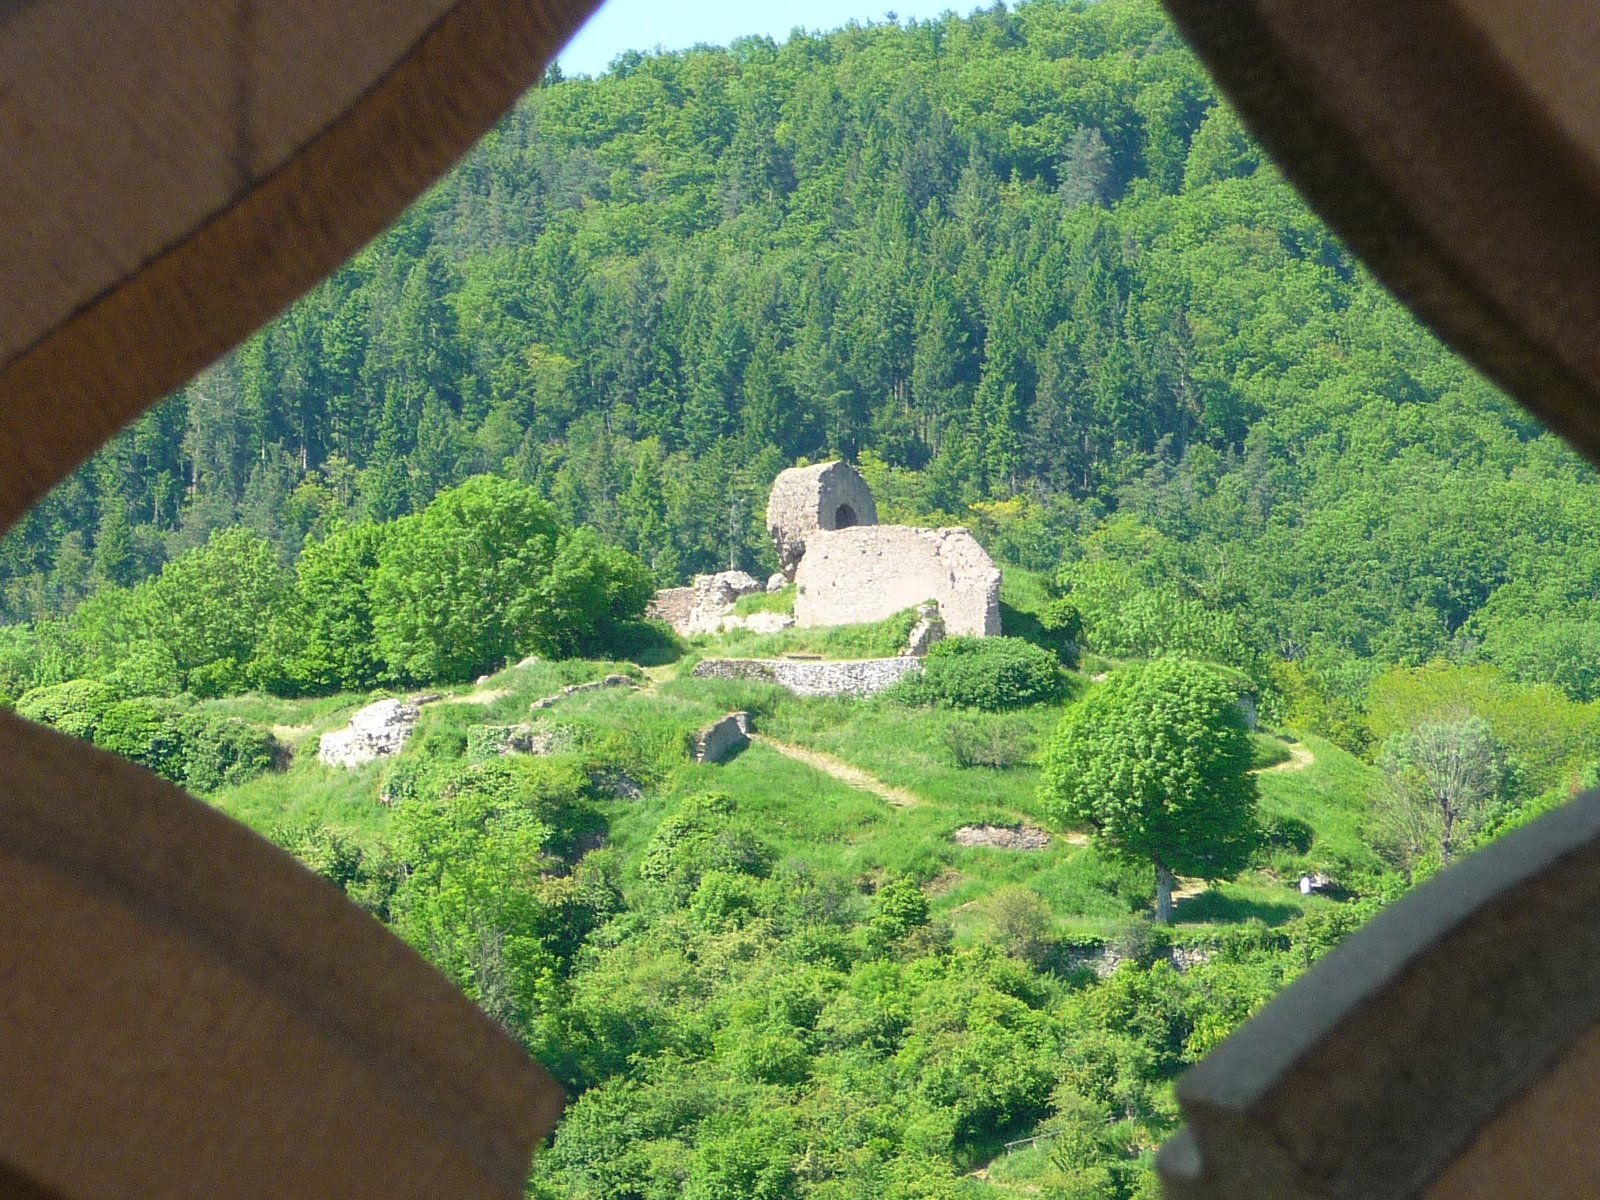 The ruins of the Engelbourg's castle